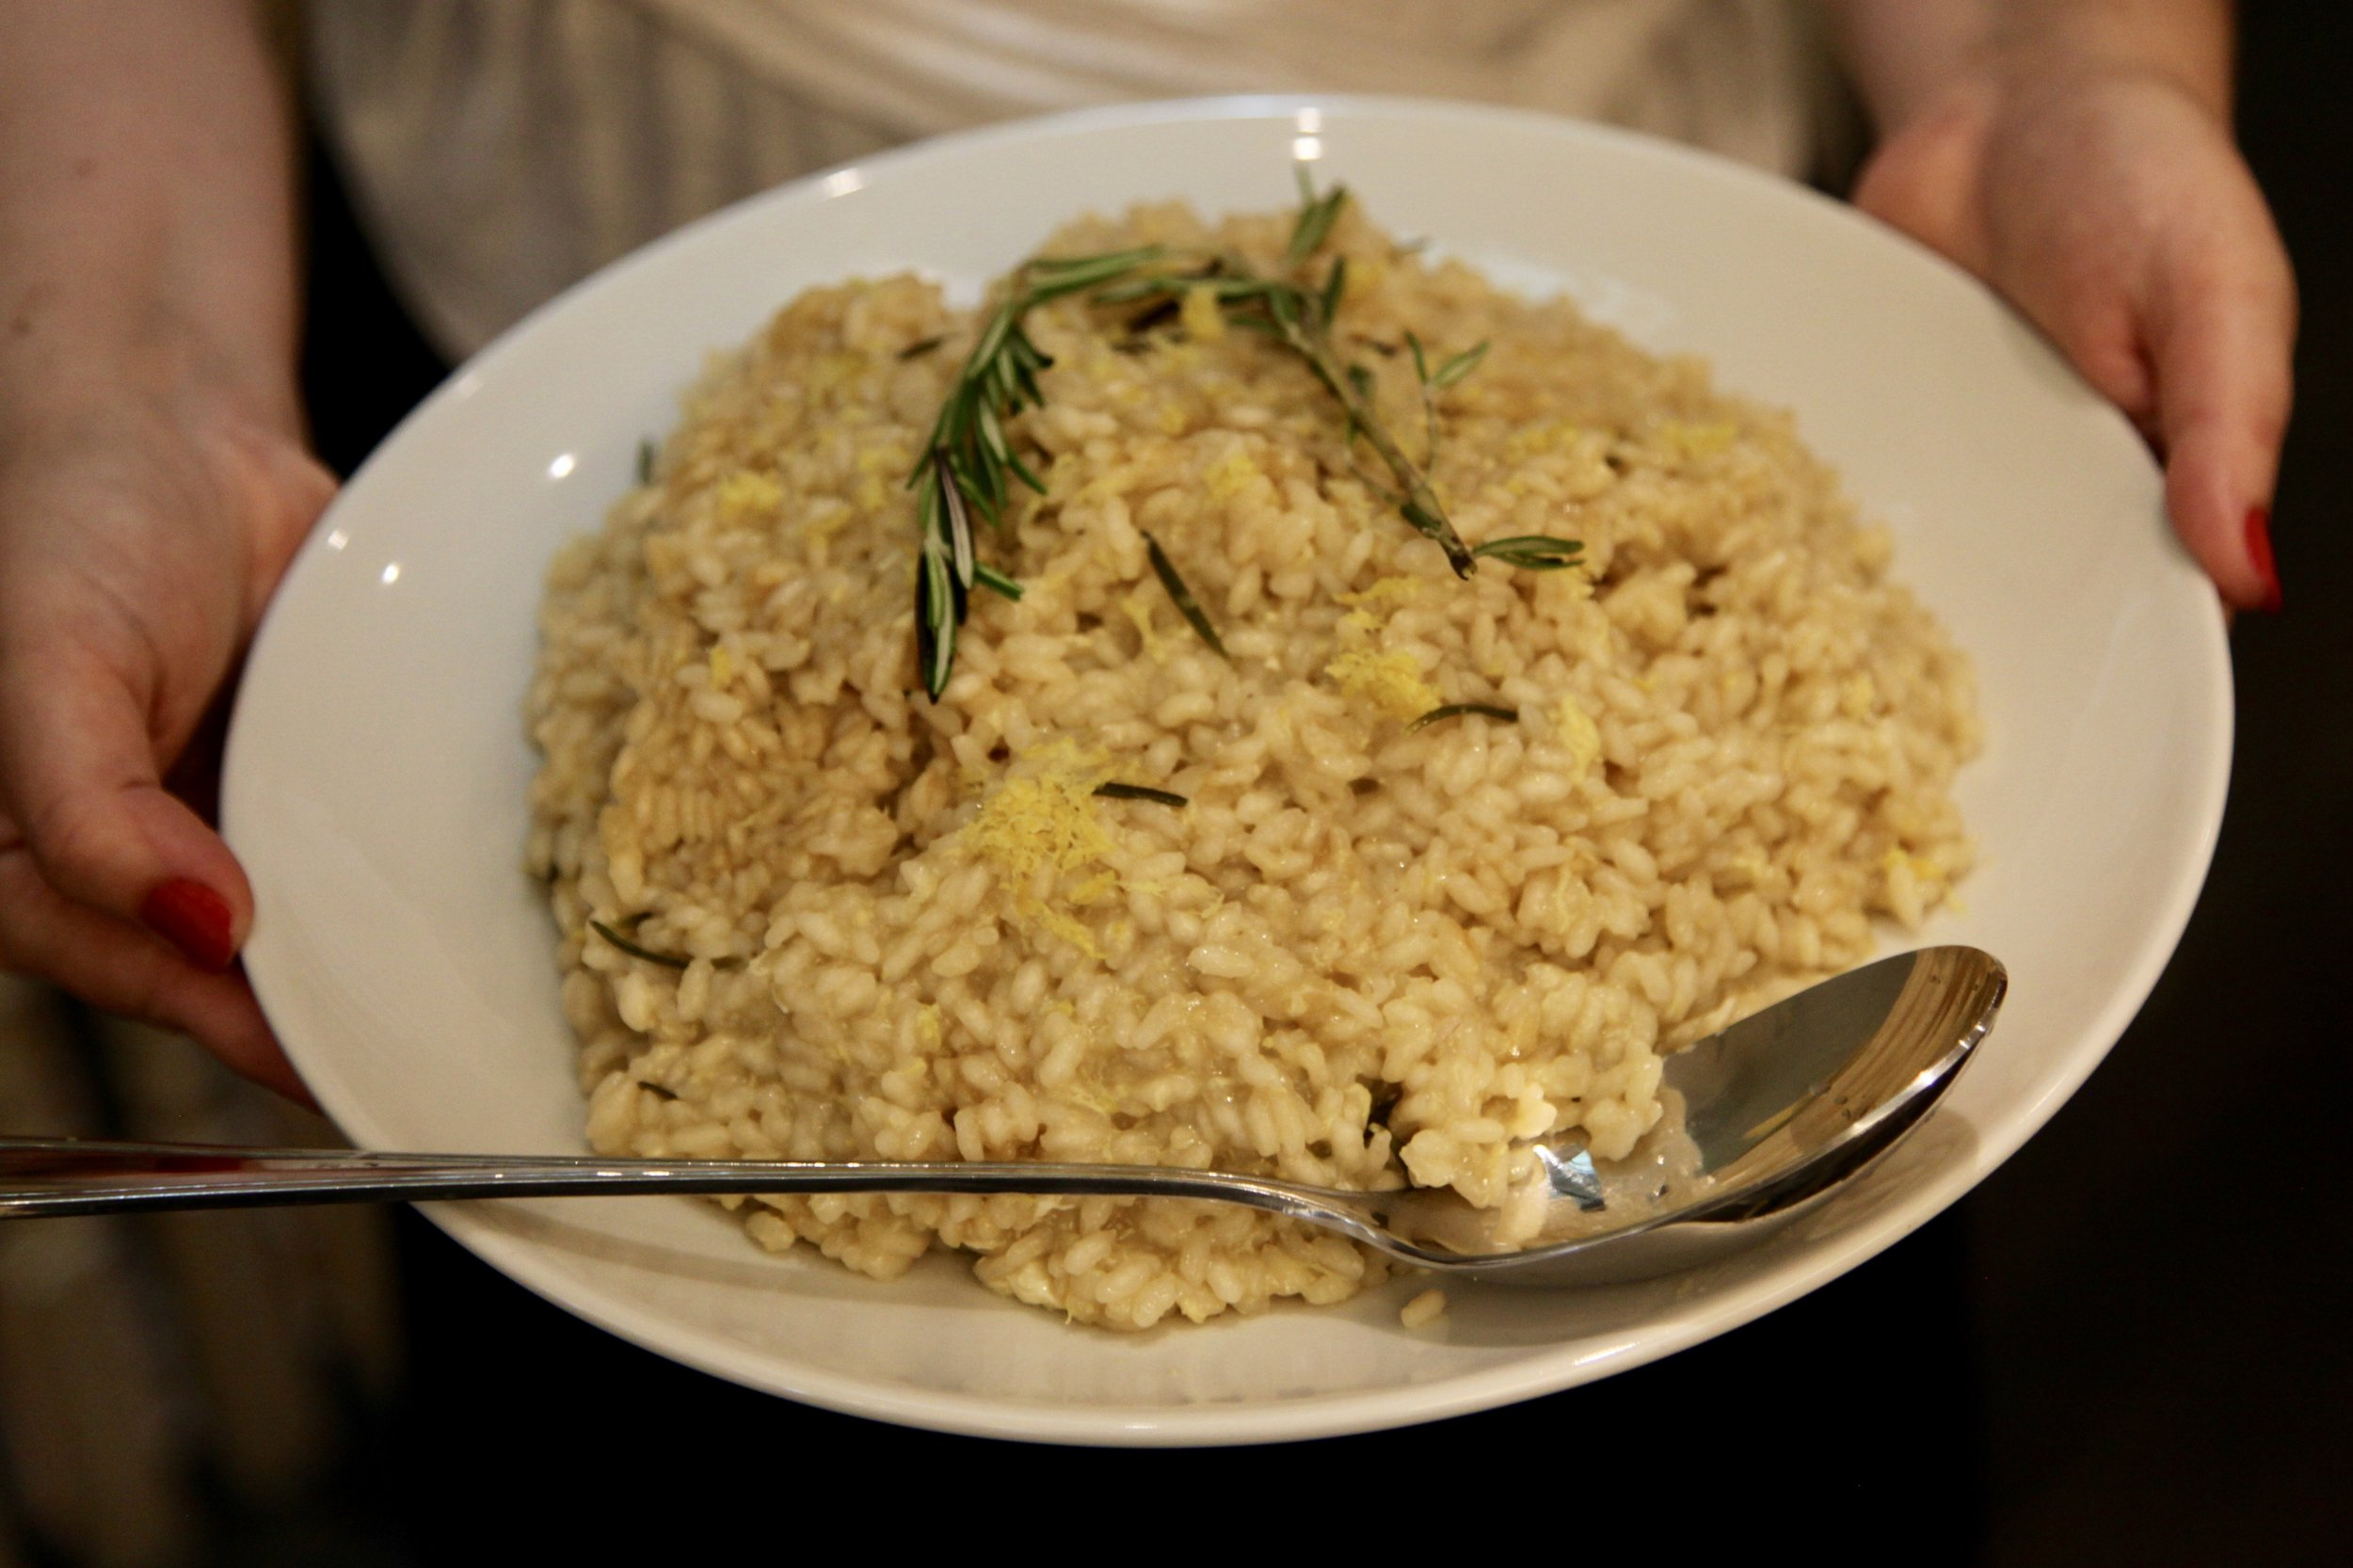 Lemon and rosemary risotto. Photo credit: James Jorasch